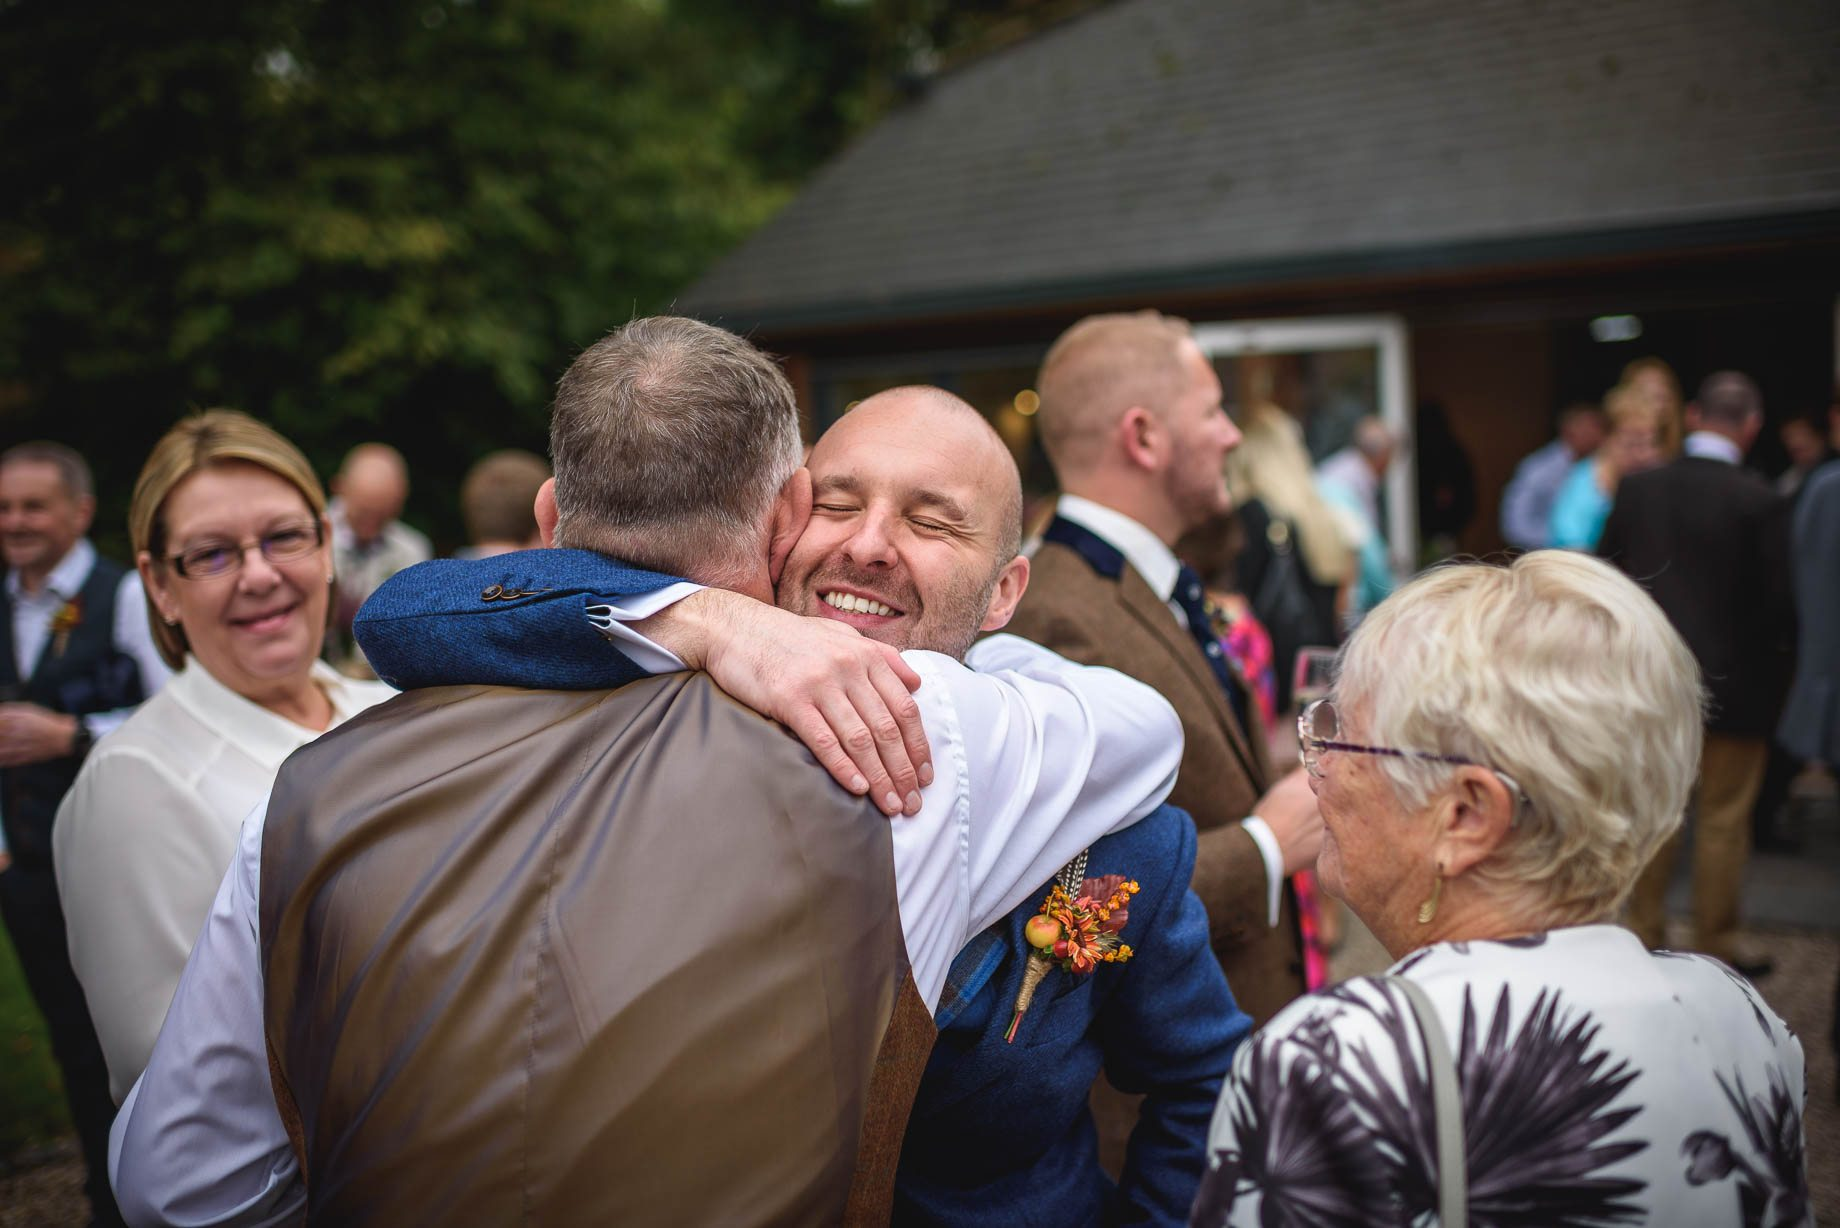 gay-wedding-photography-at-wasing-park-guy-collier-photography-ben-and-stephen-84-of-202